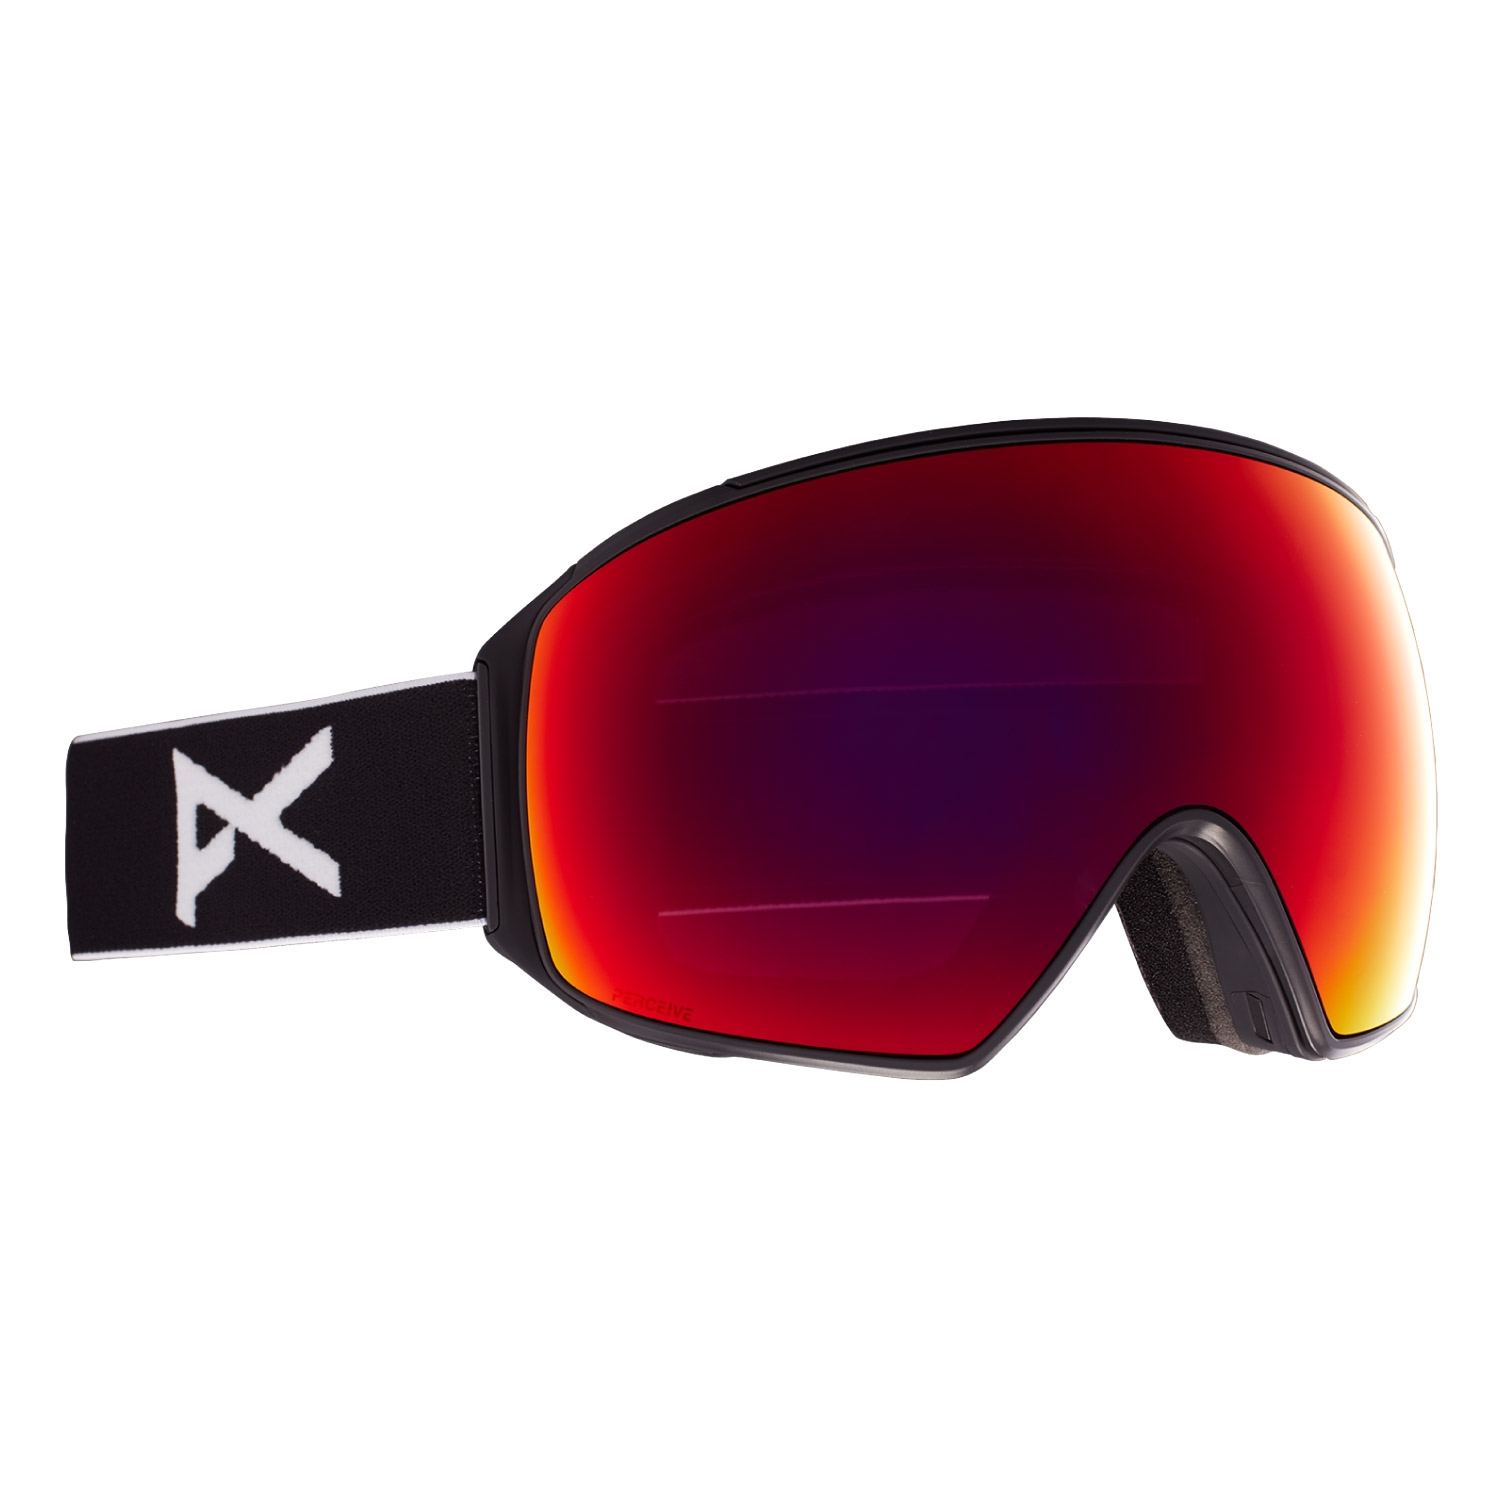 Anon M4 Goggles Toric Black/Perceive Sun Red Lens 2021